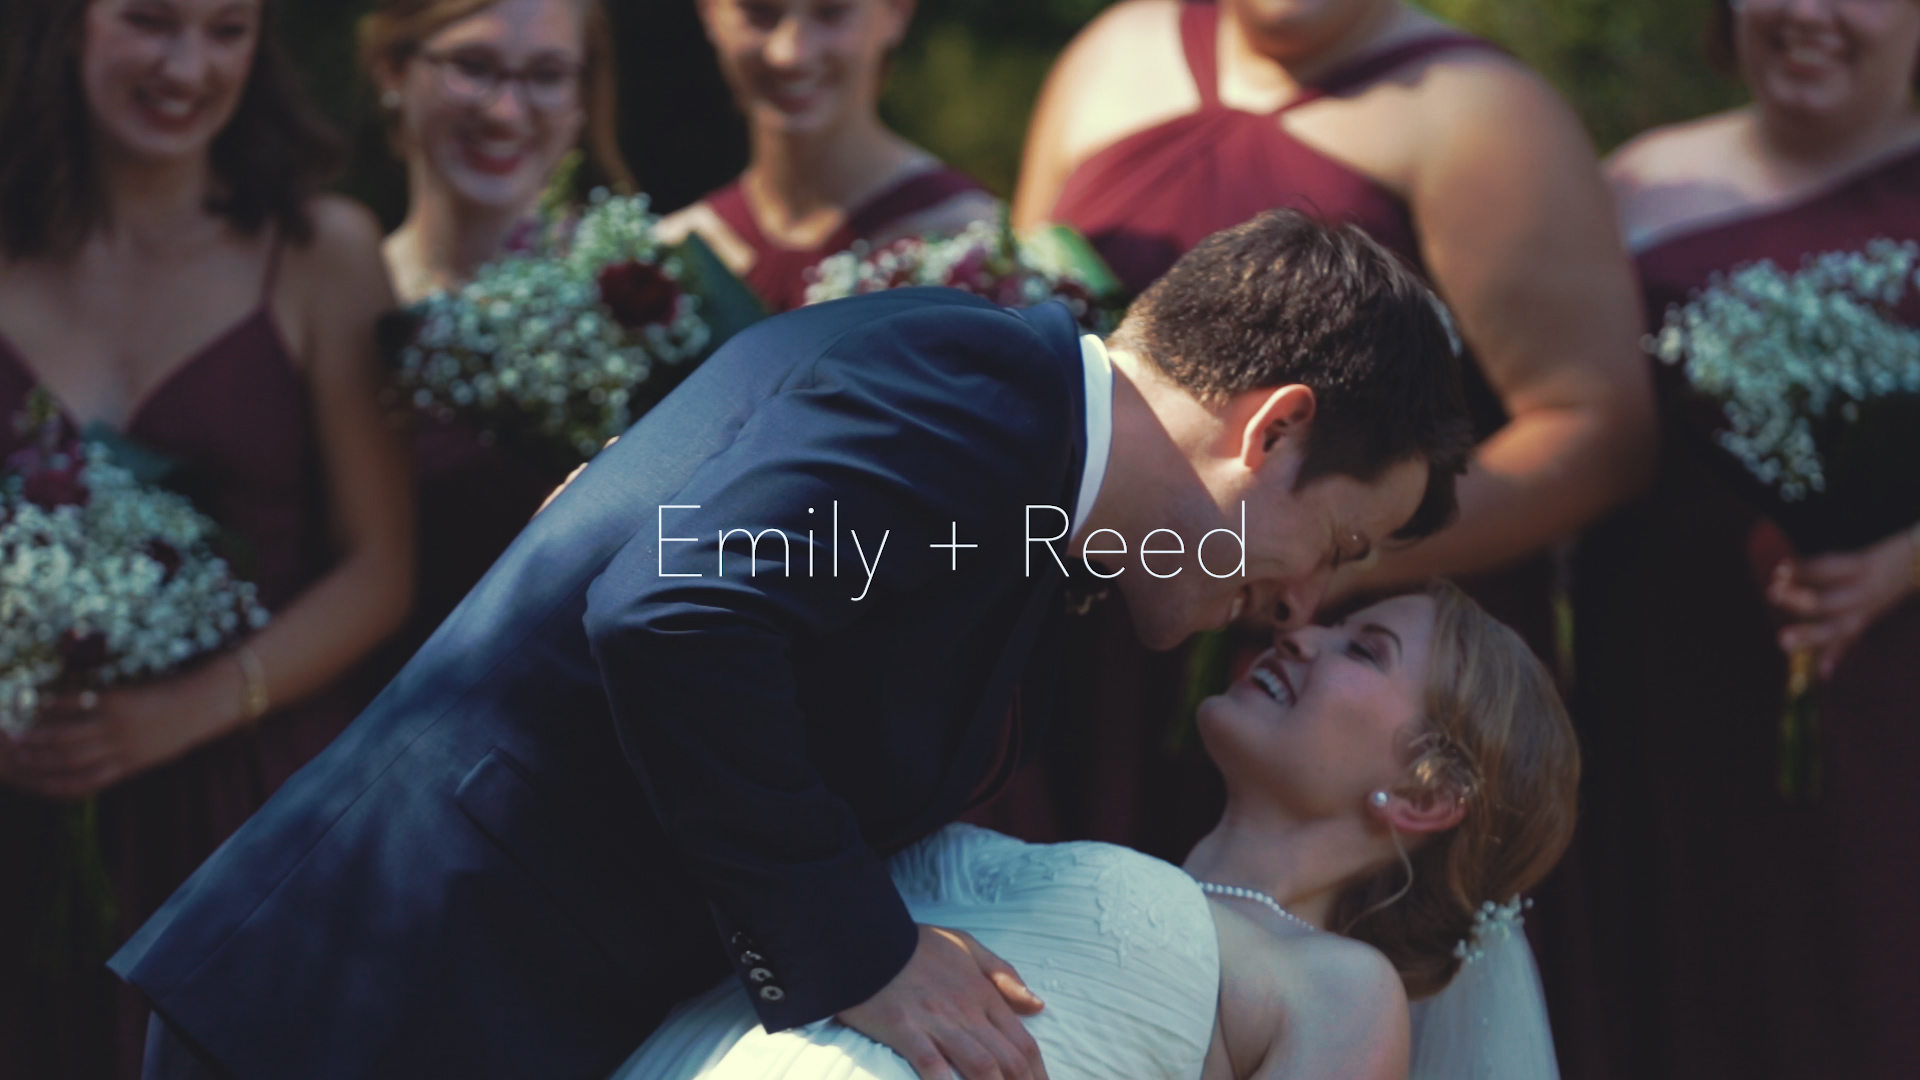 Emily + Reed | Belvidere, North Carolina | The Onely Place